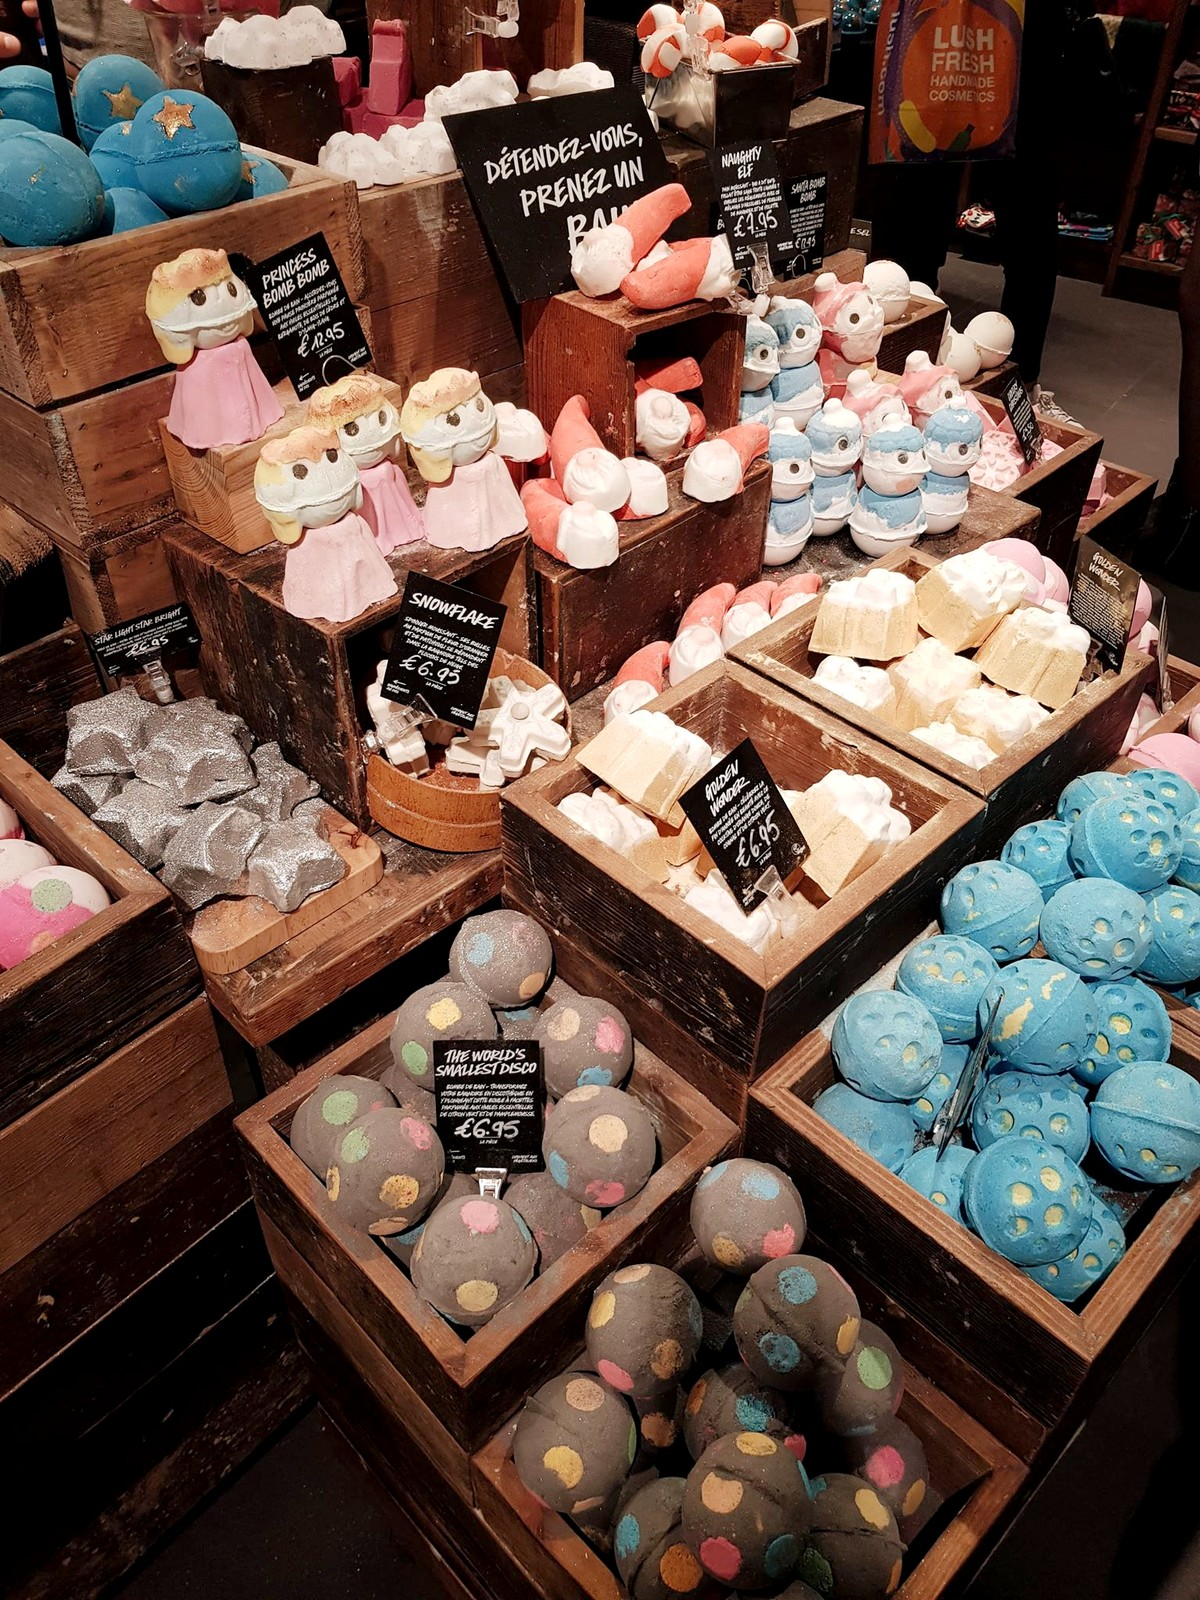 Lush collection noël 2018